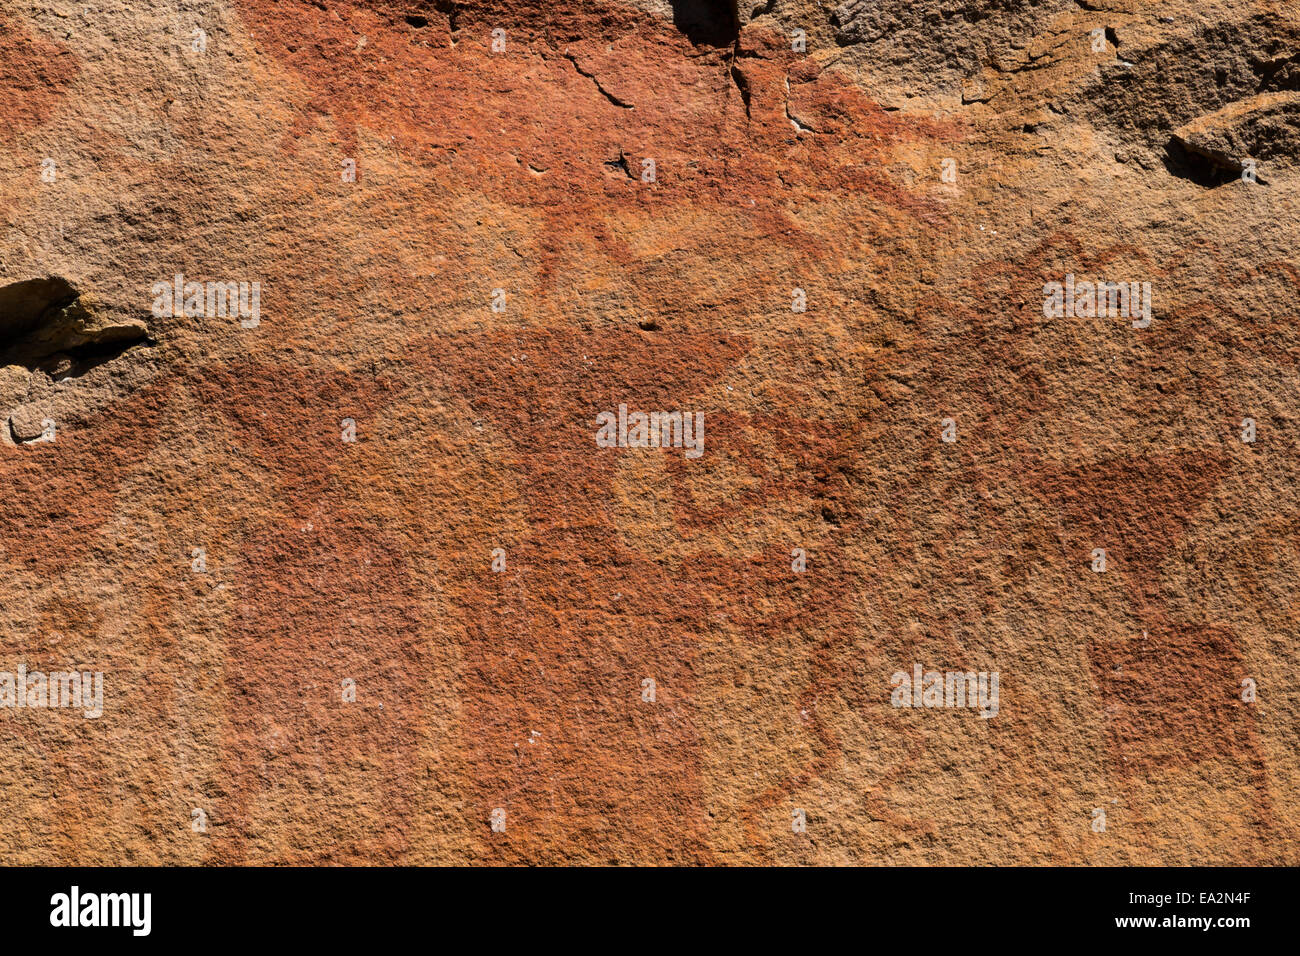 Caveman Art : Caveman art stock photos & images alamy